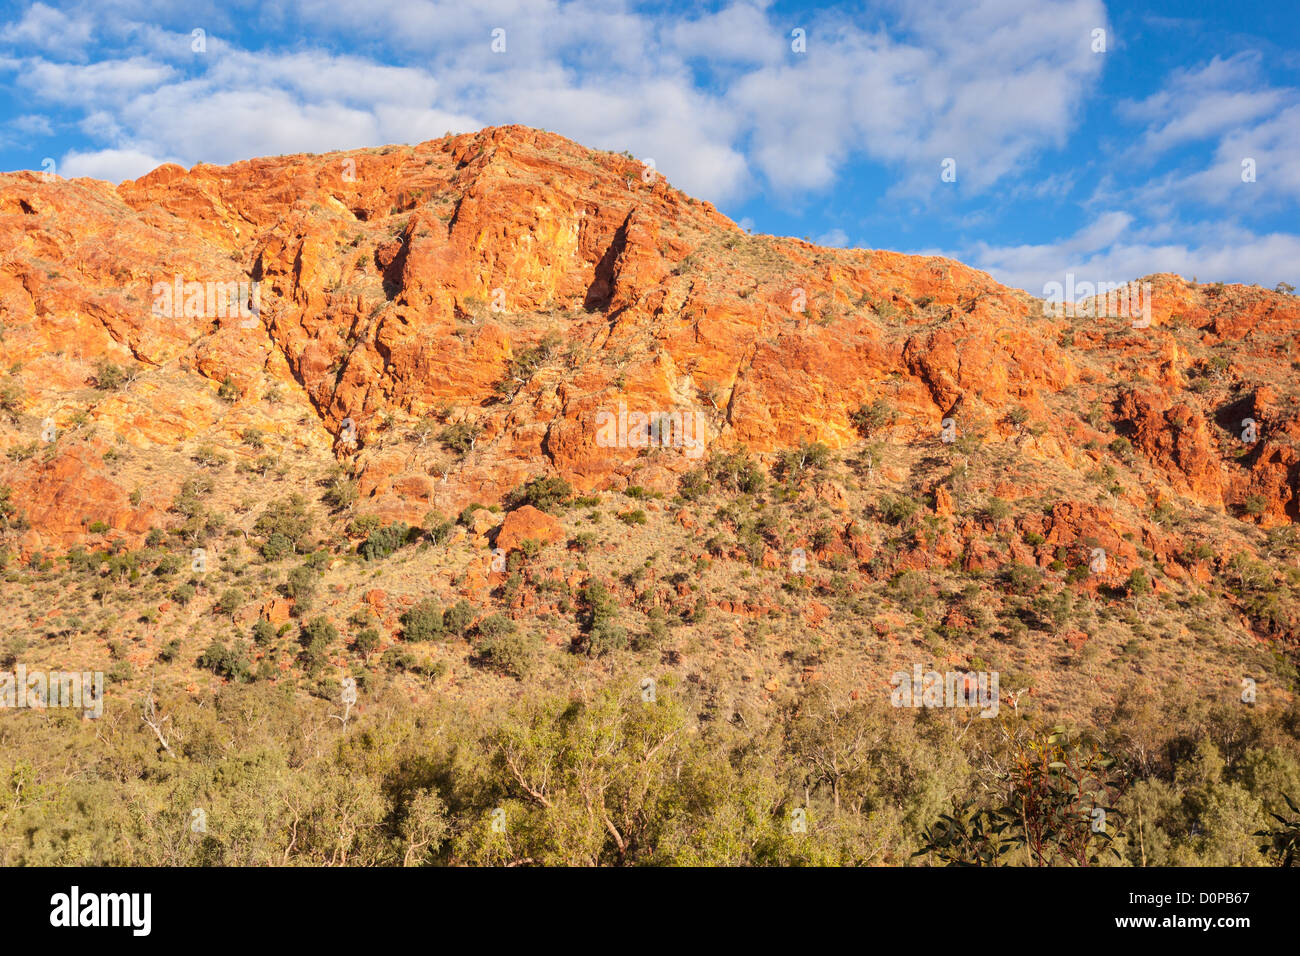 Rugged cliffs in Trephina Gorge in the East MacDonnell Ranges near Alice Springs - Stock Image